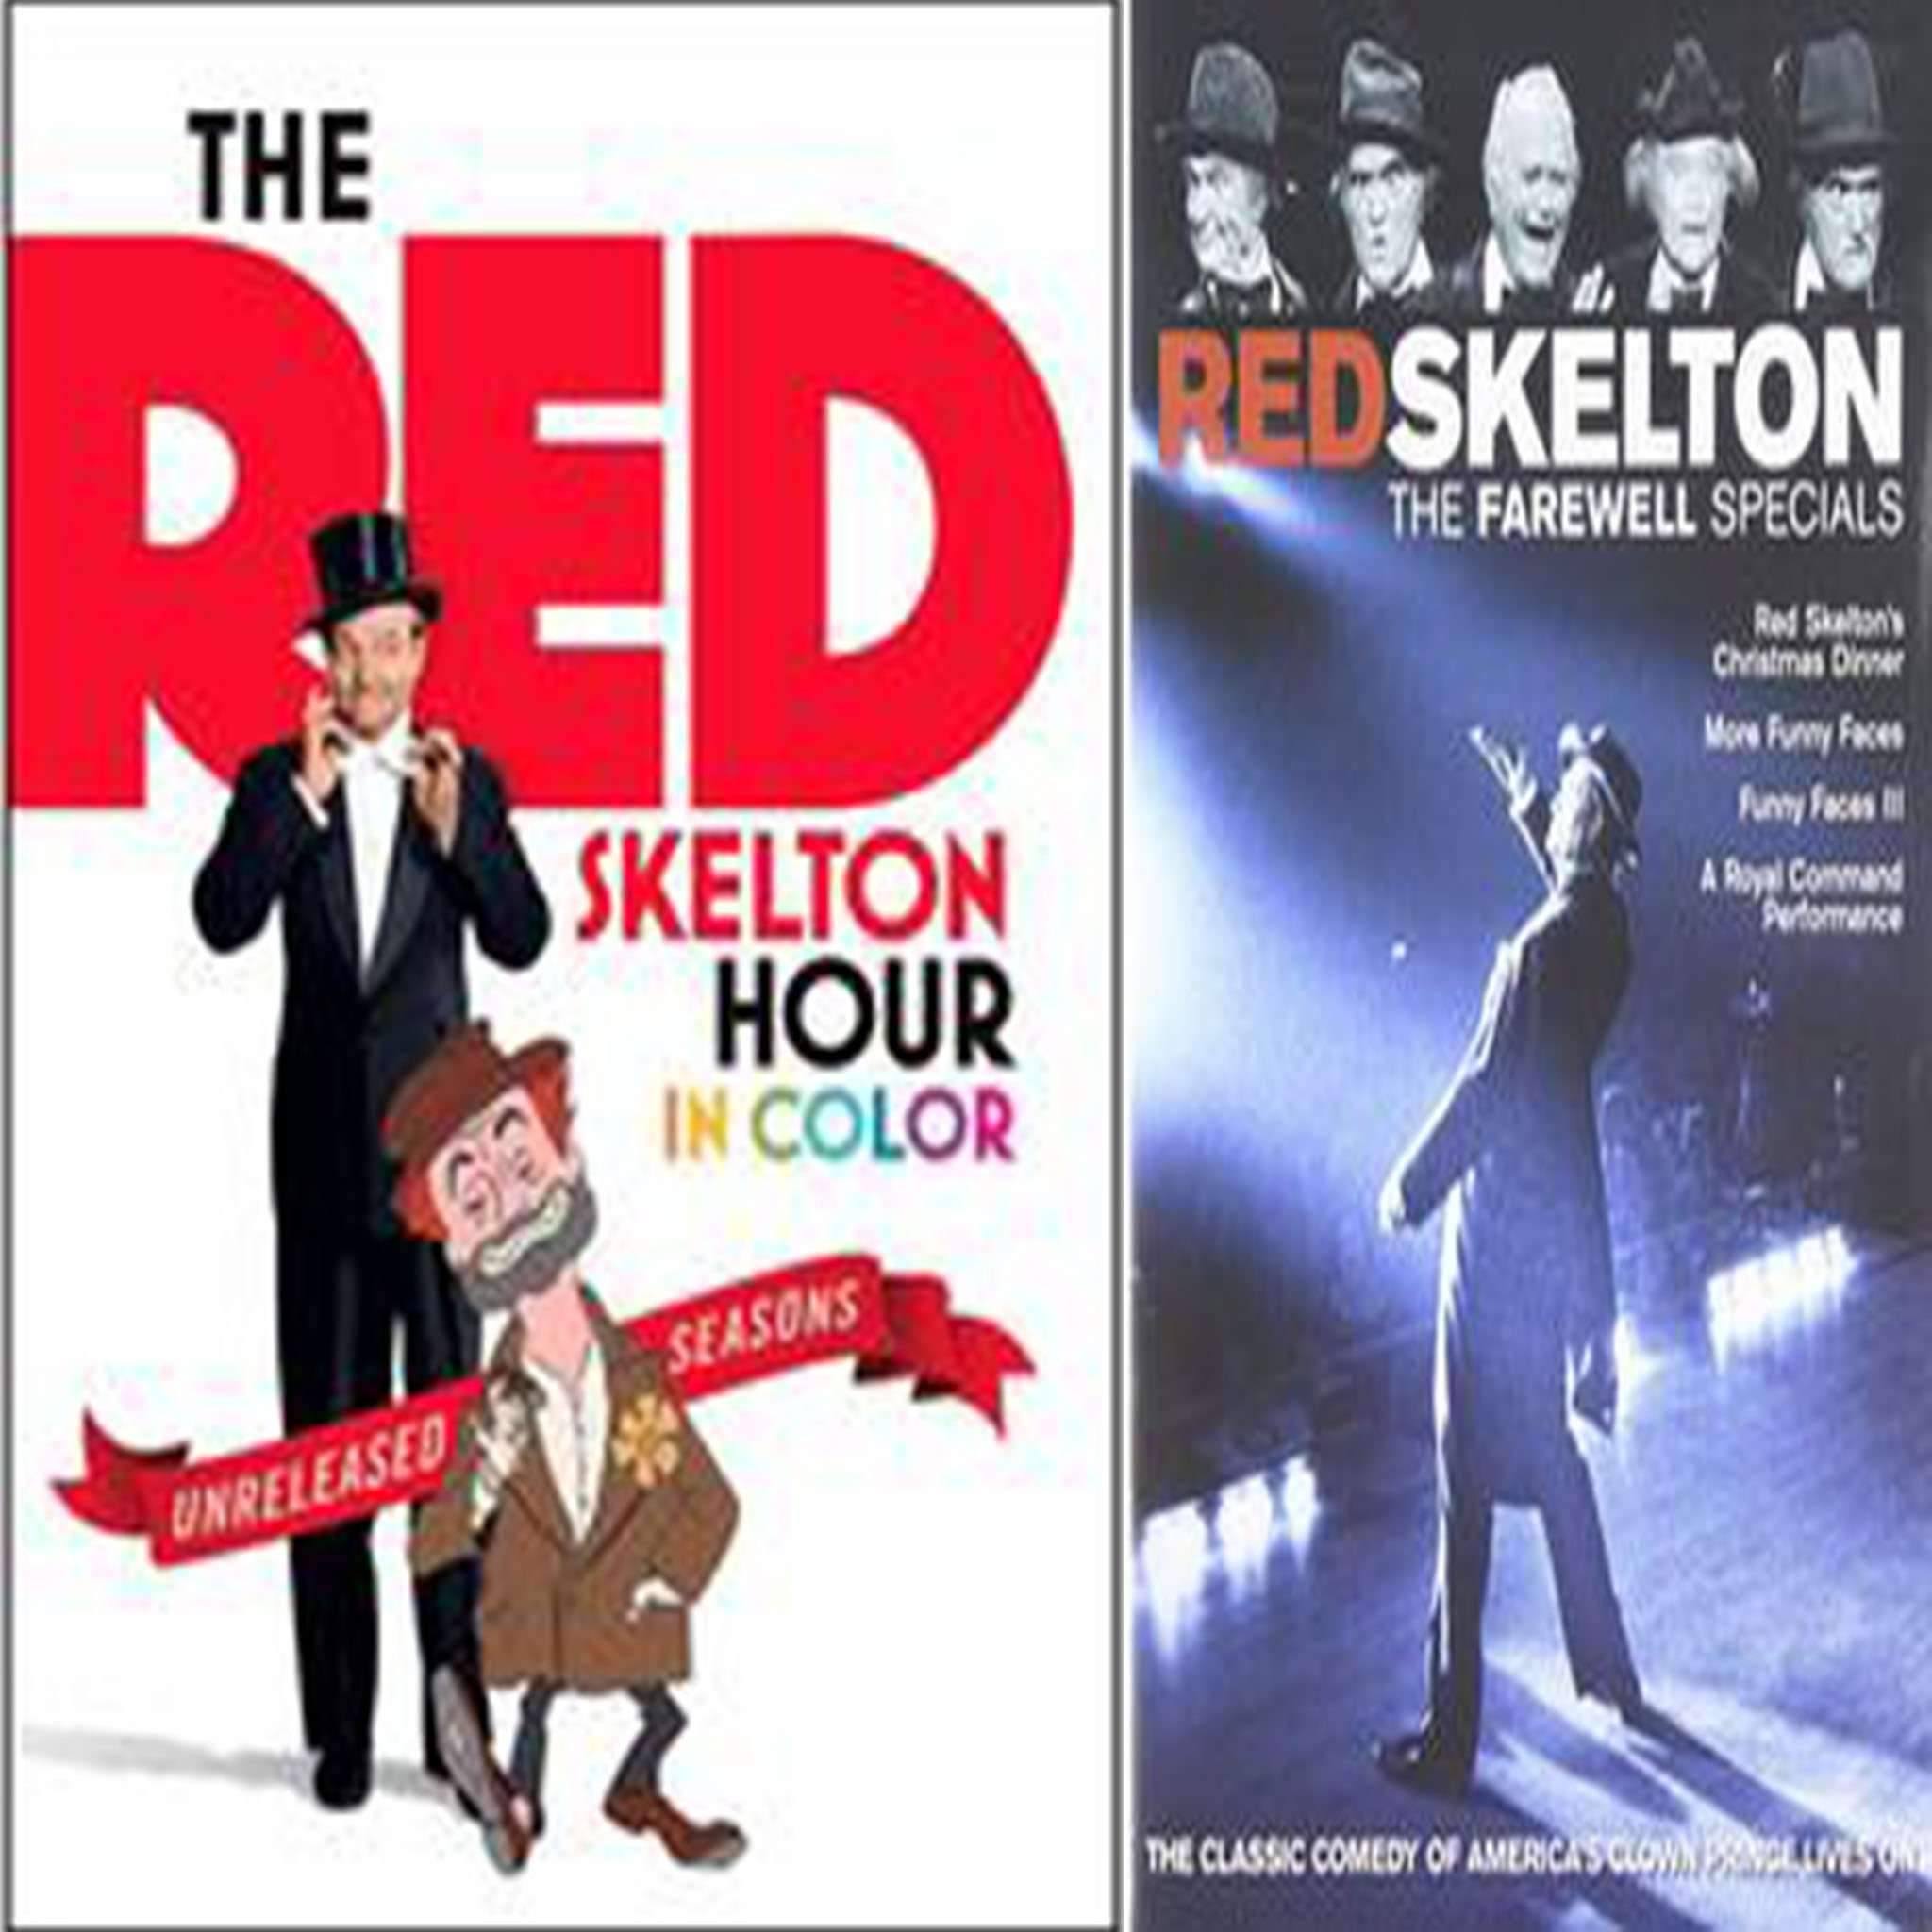 Red Skelton Hour DVD Box  Set Time Life Entertainment DVDs & Blu-ray Discs > DVDs > Box Sets